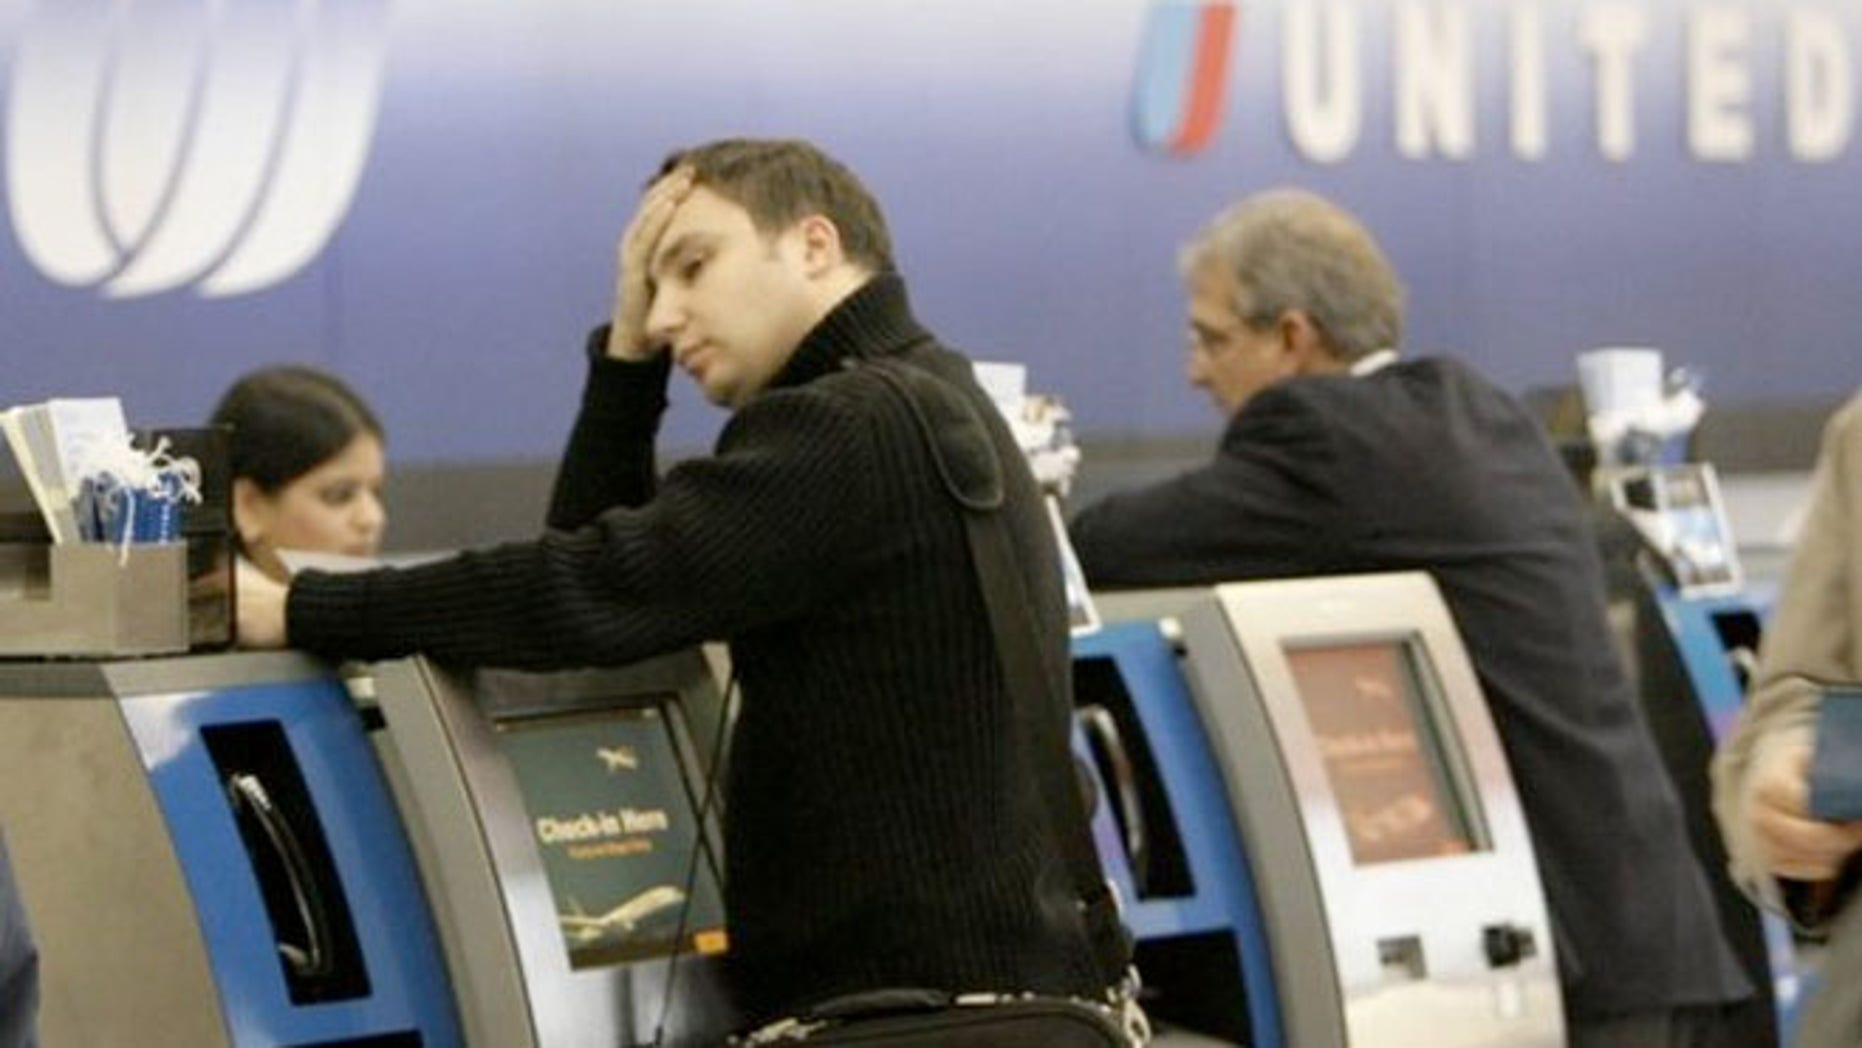 Carriers can learn a thing or two from how comedians use airline complaints in their schtick.